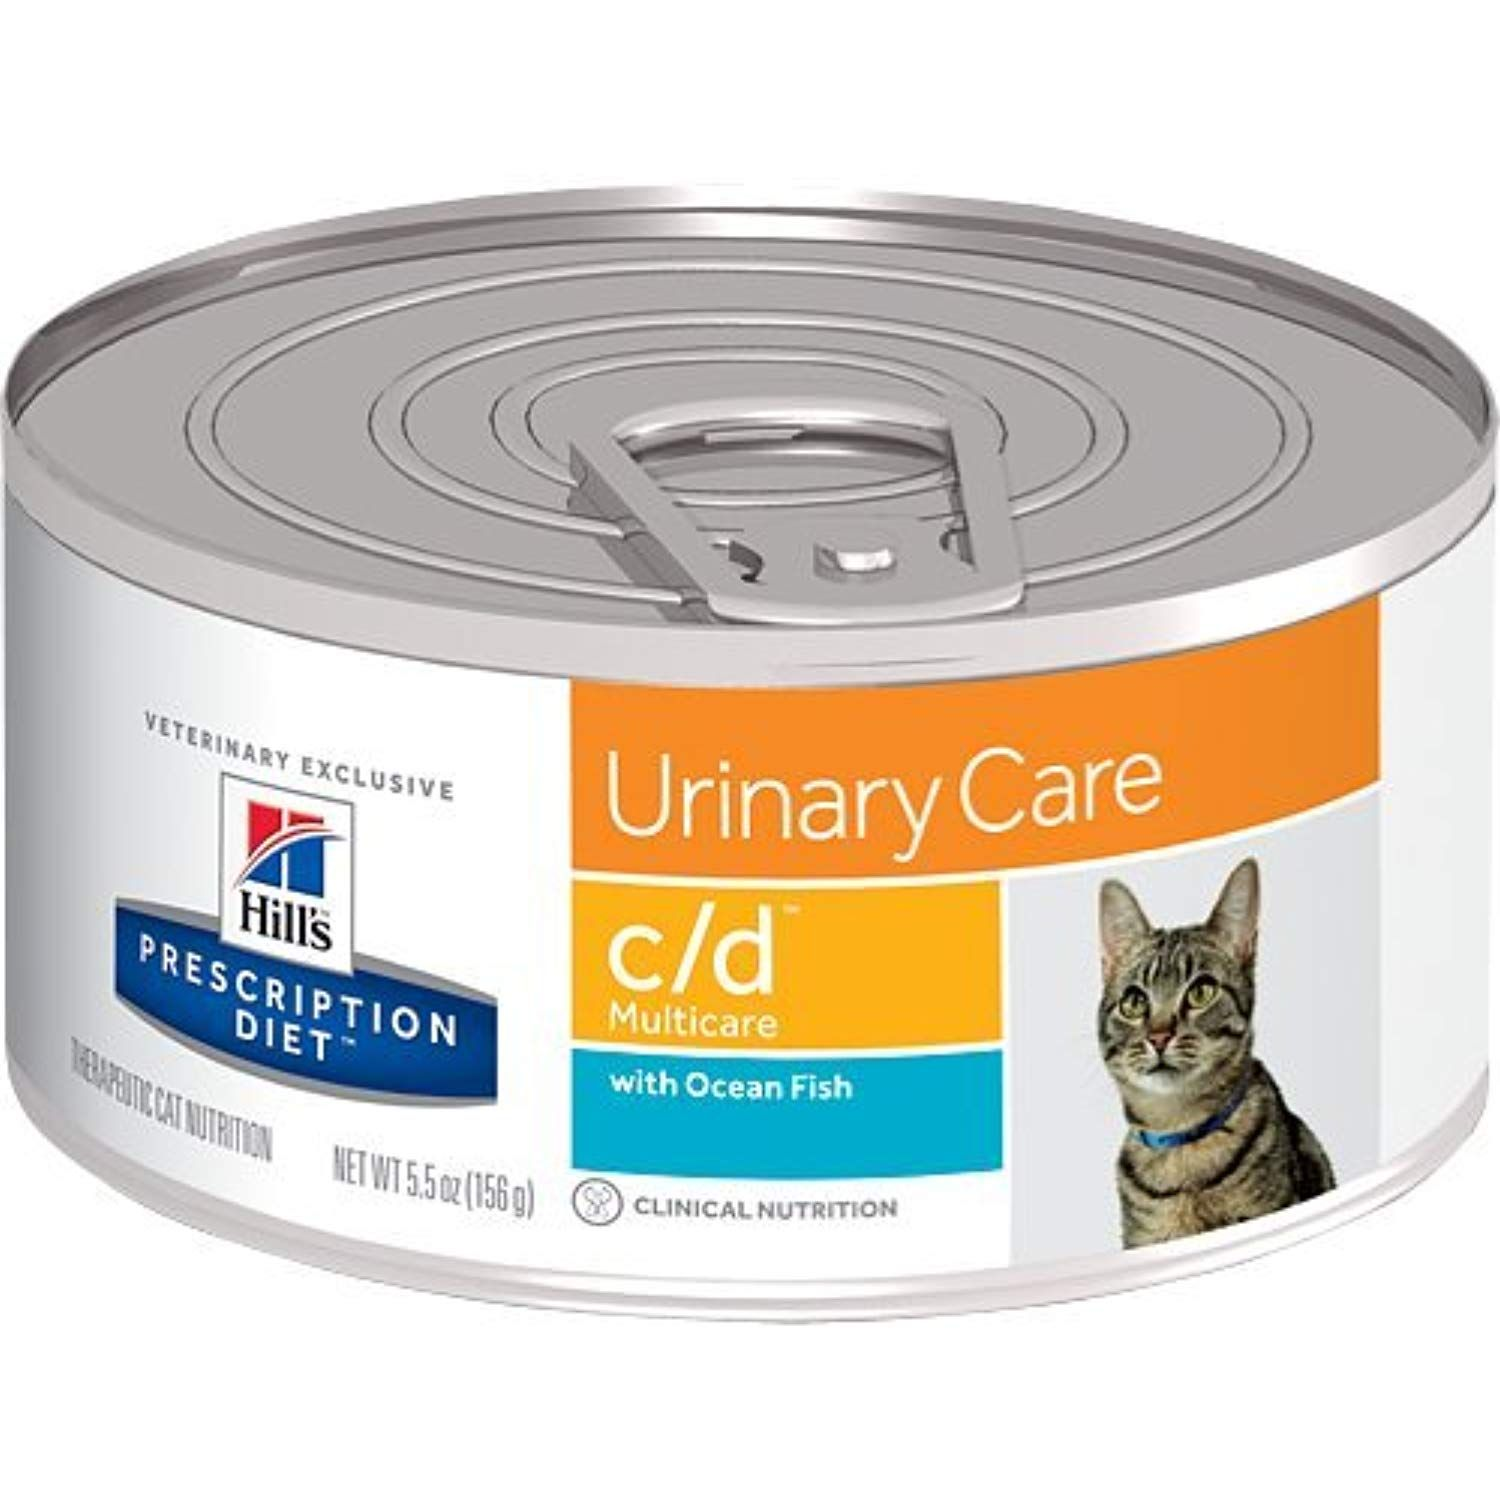 Hill's Prescription Diet c/d Multicare Urinary Care with